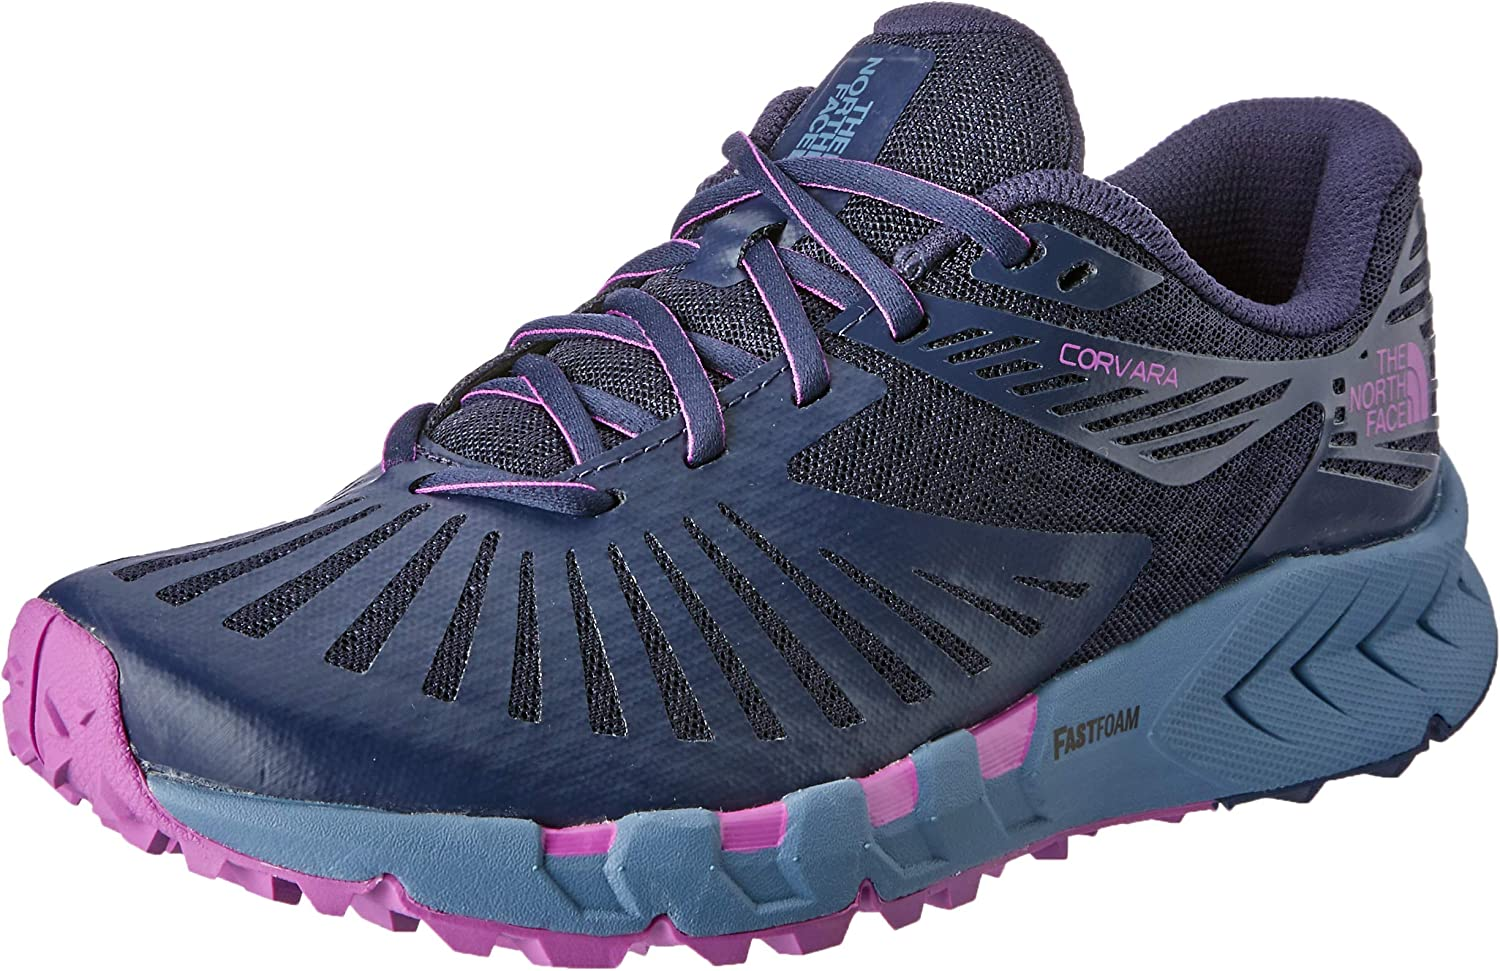 The North Face Women's Corvara Trail Running shoes, Peacot NVY PRP Catus Flwr